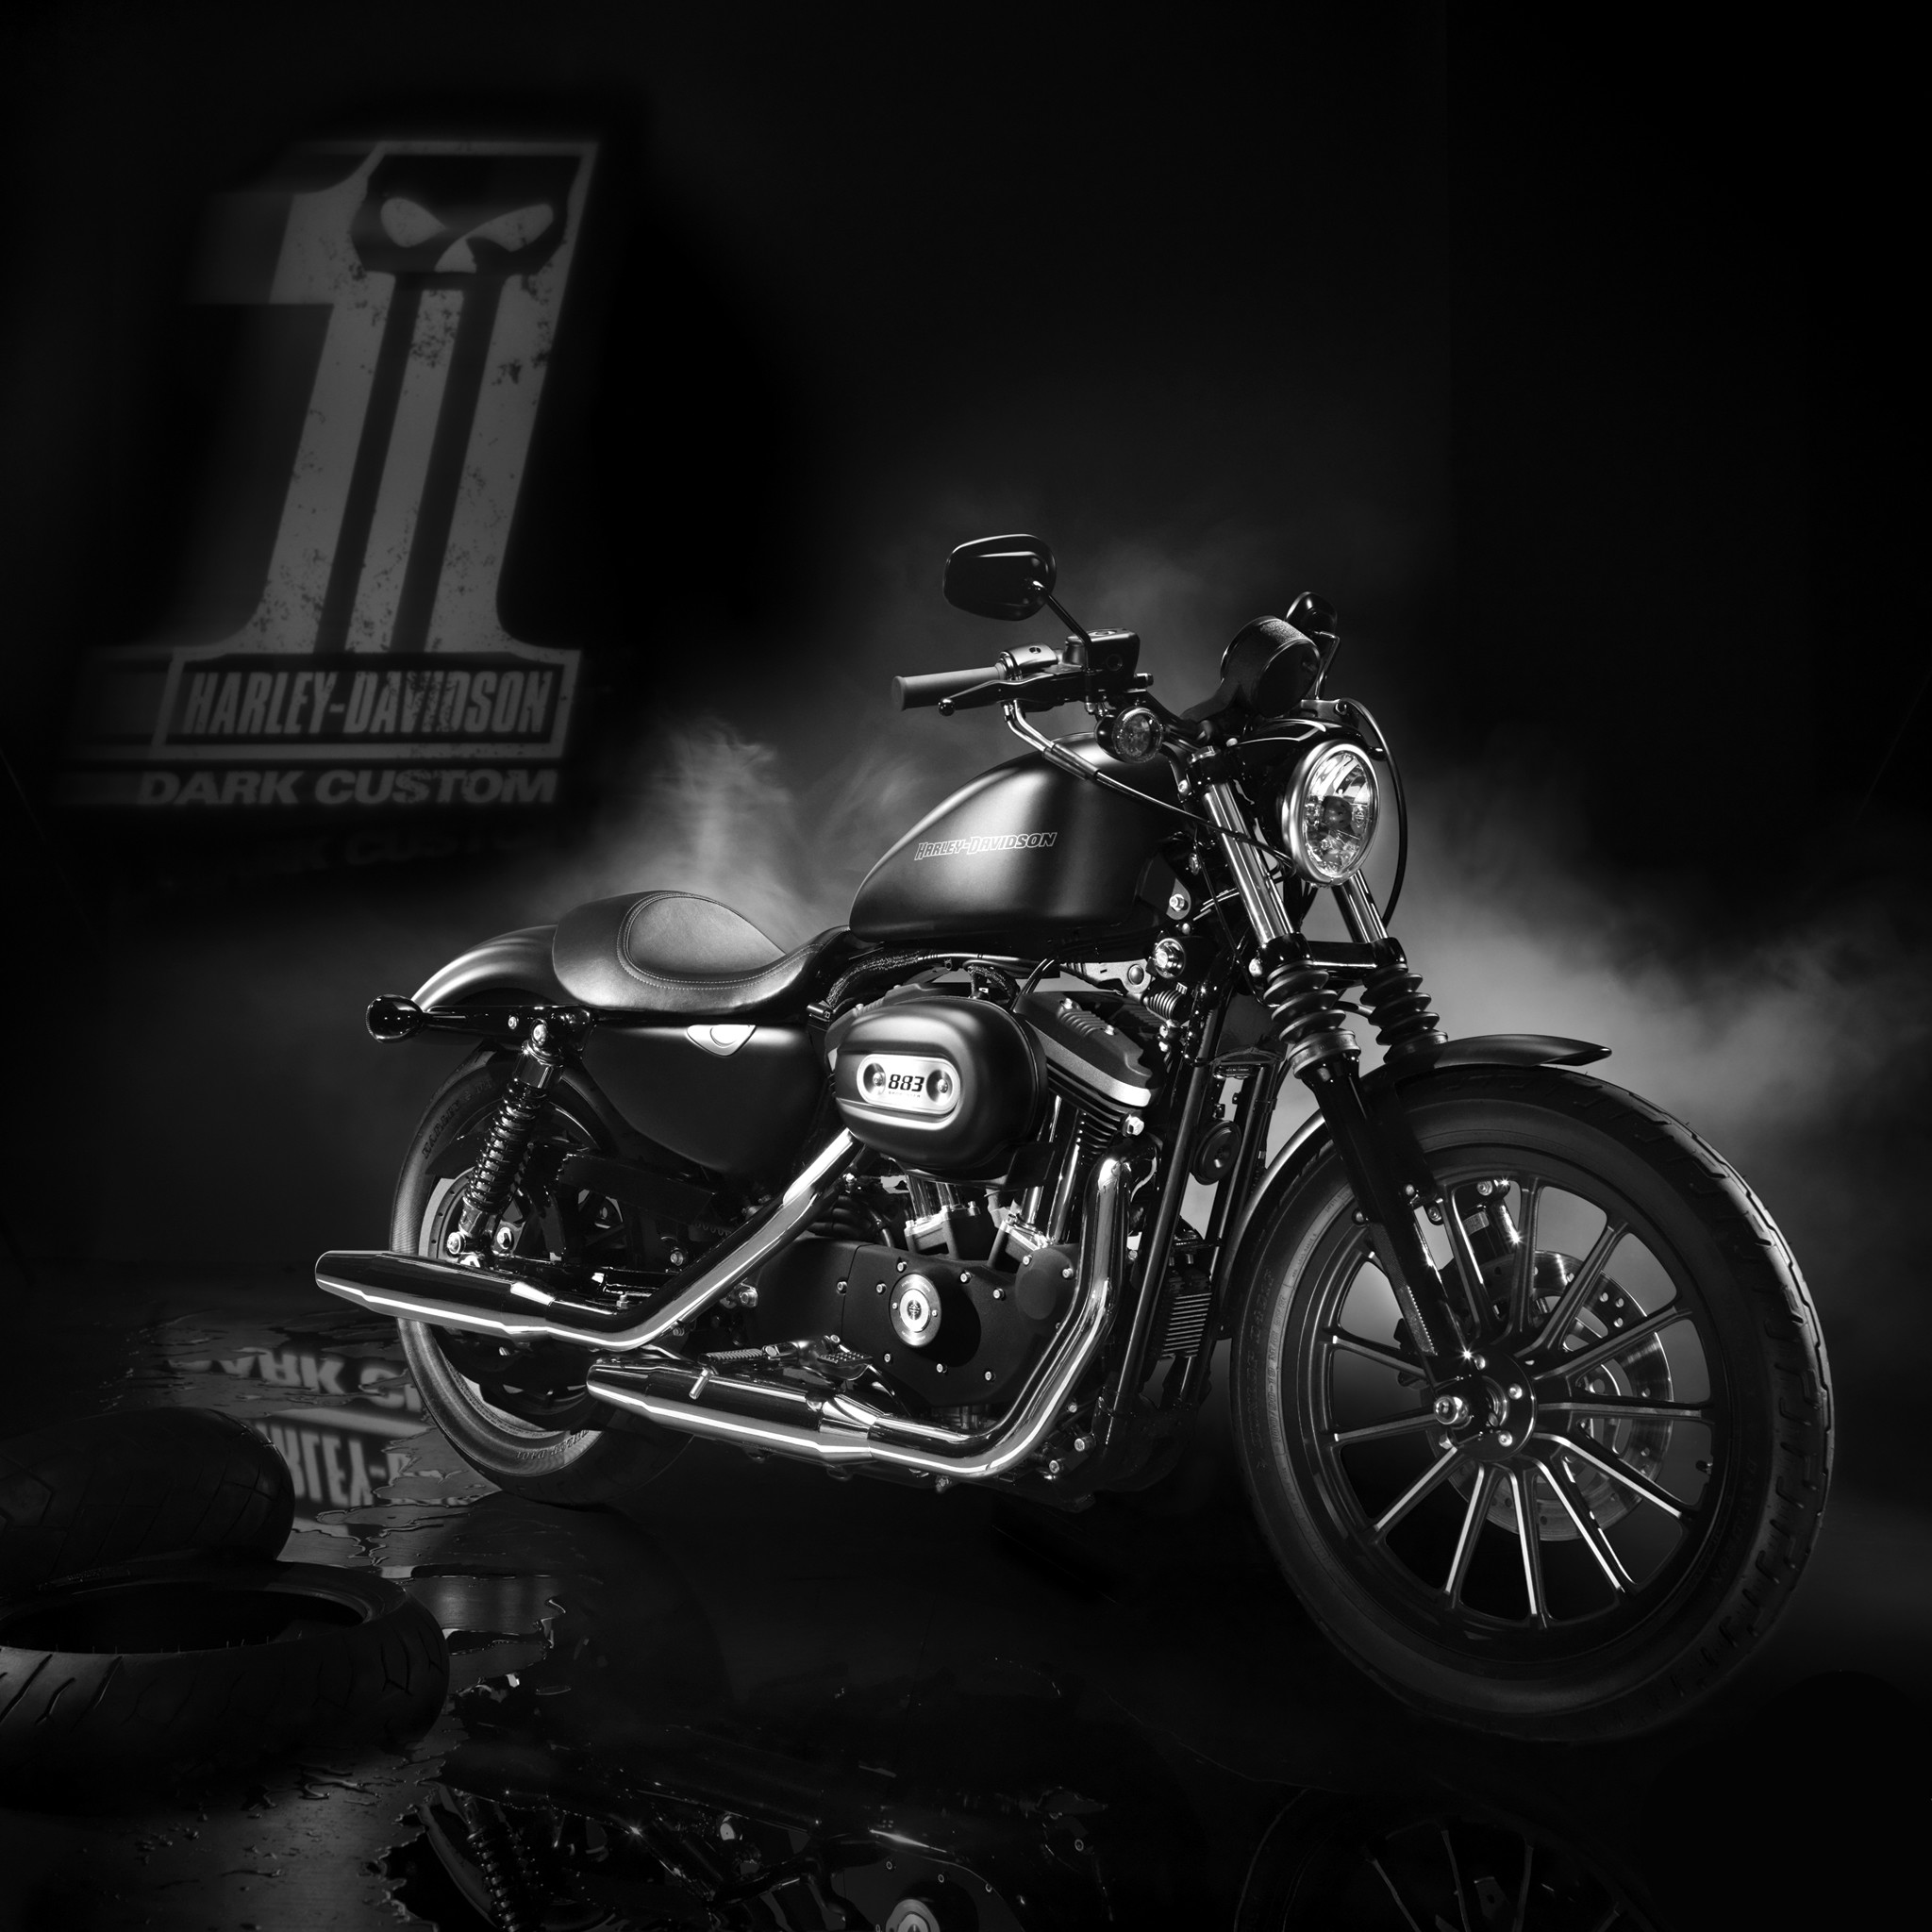 Harley Davidson Desktop Wallpaper (72+ Images